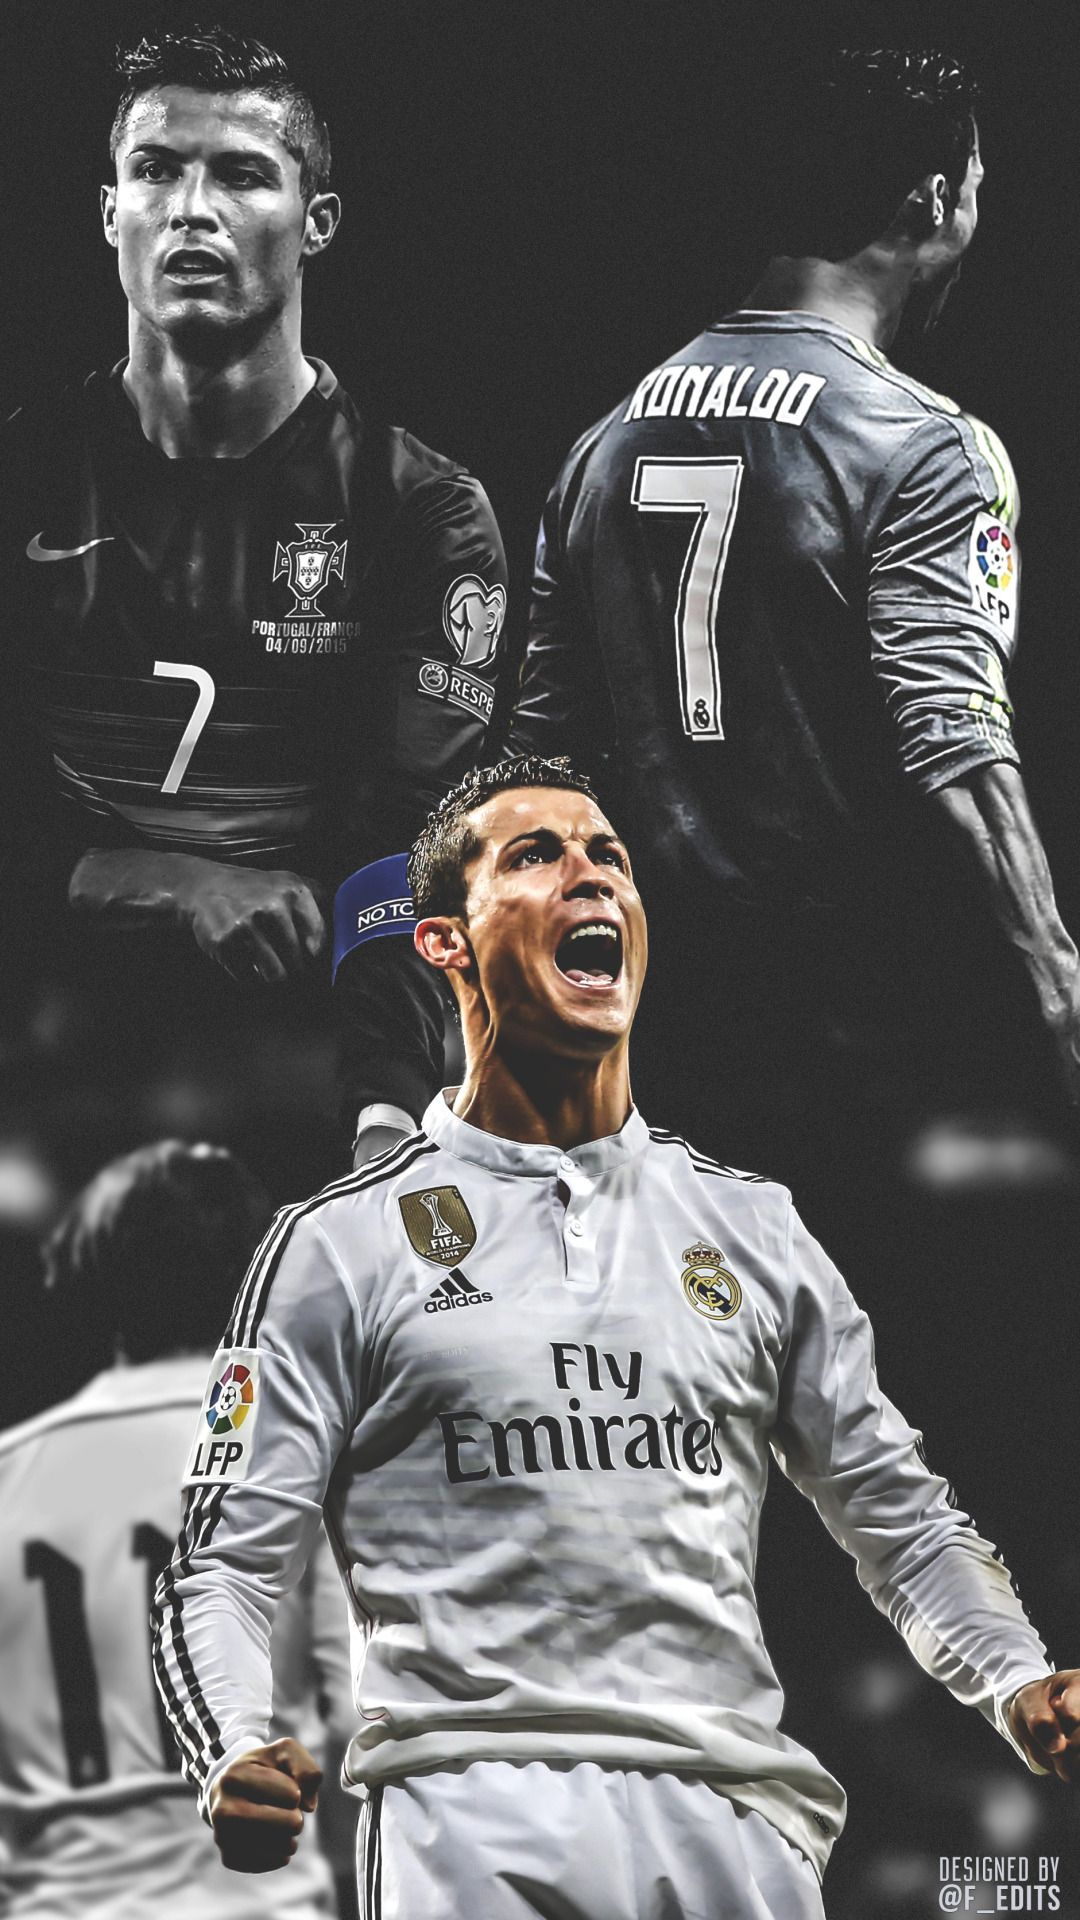 cristiano ronaldo iphone wallpaper cr7 cristiano. Black Bedroom Furniture Sets. Home Design Ideas